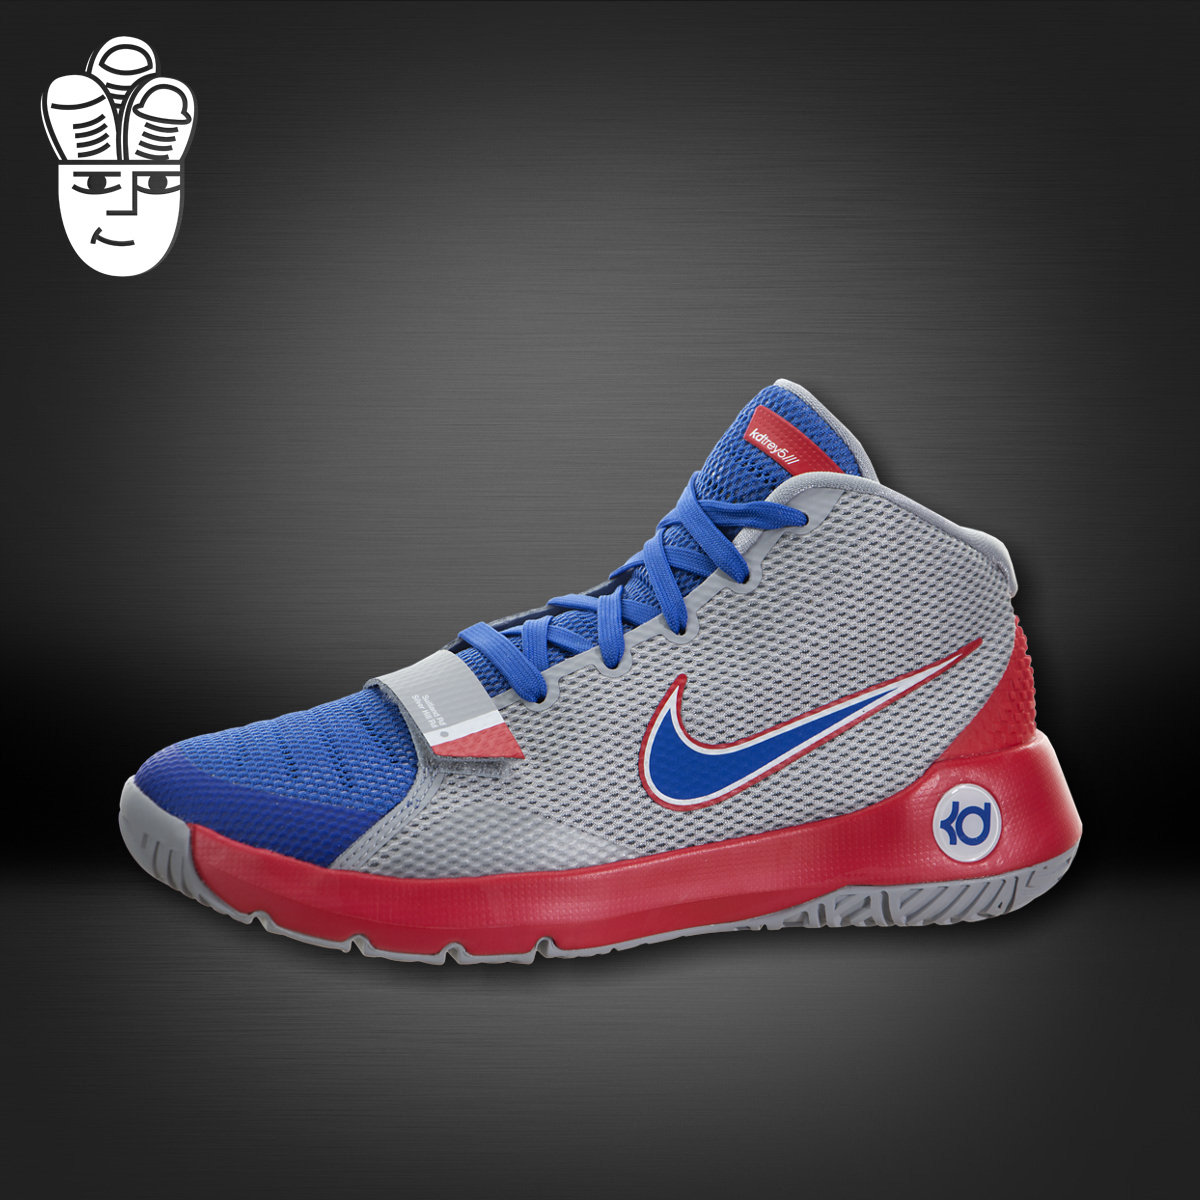 e872730f06e8 Get Quotations · Nike kd trey 5 Â vii (kids) durant nike basketball shoes  for men and